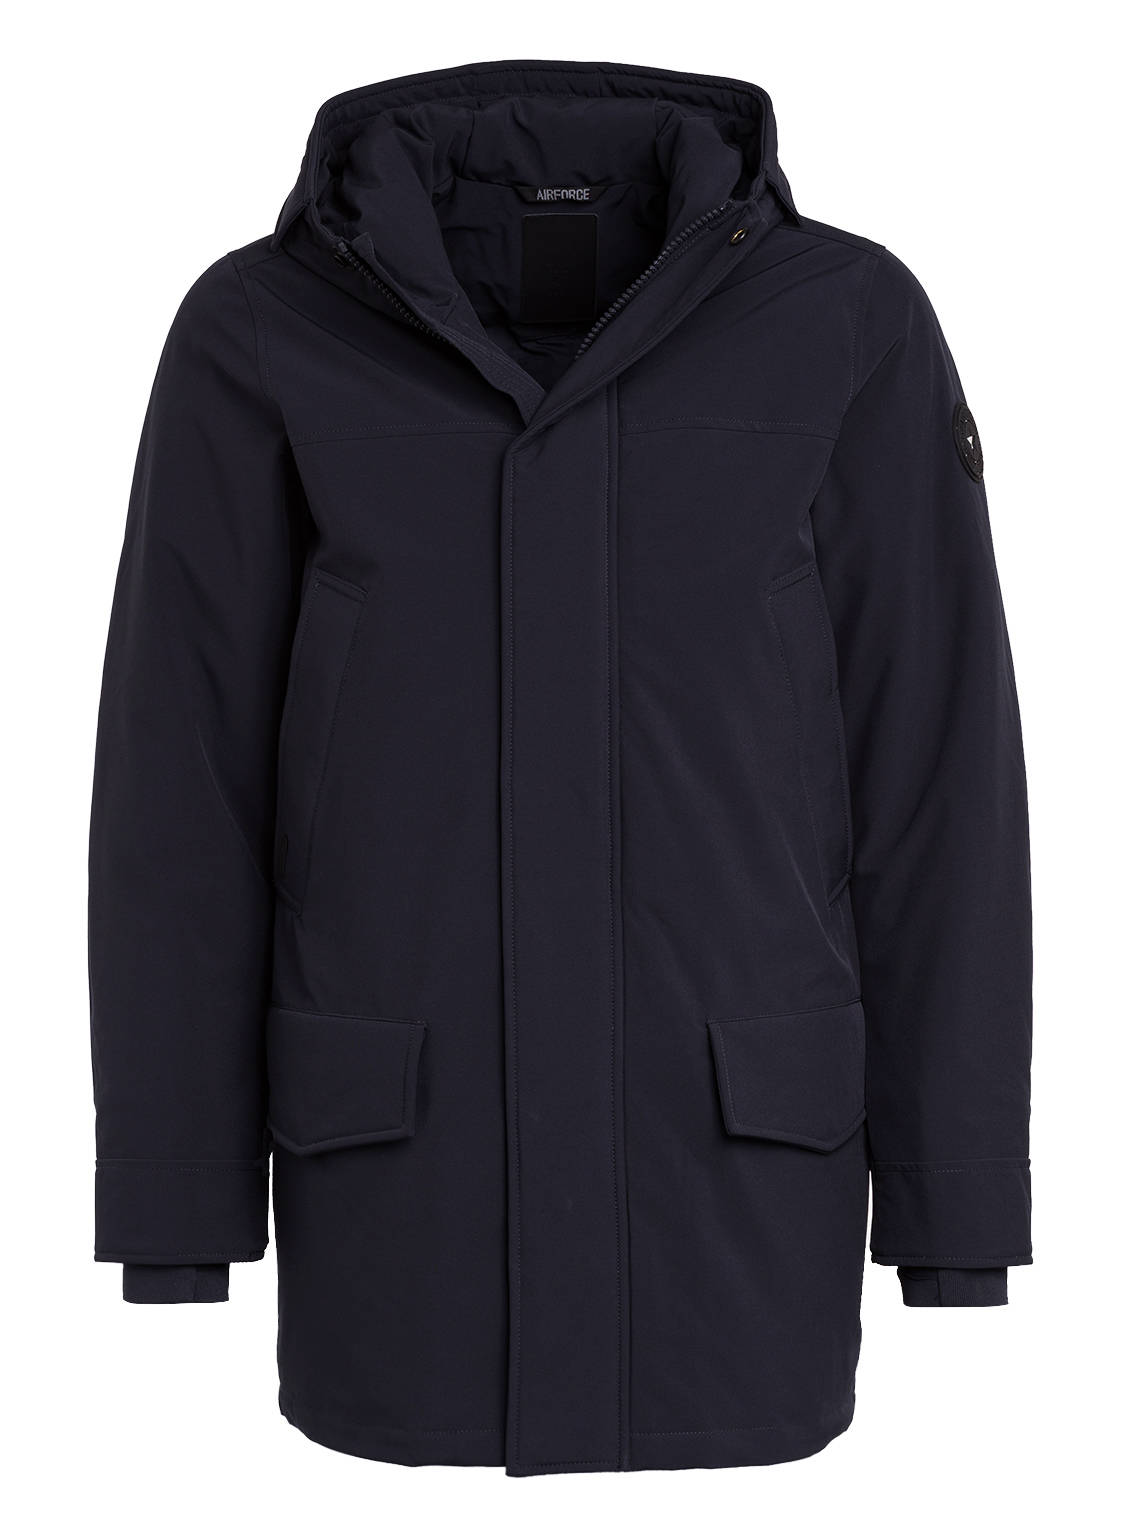 Image of Airforce Parka blau